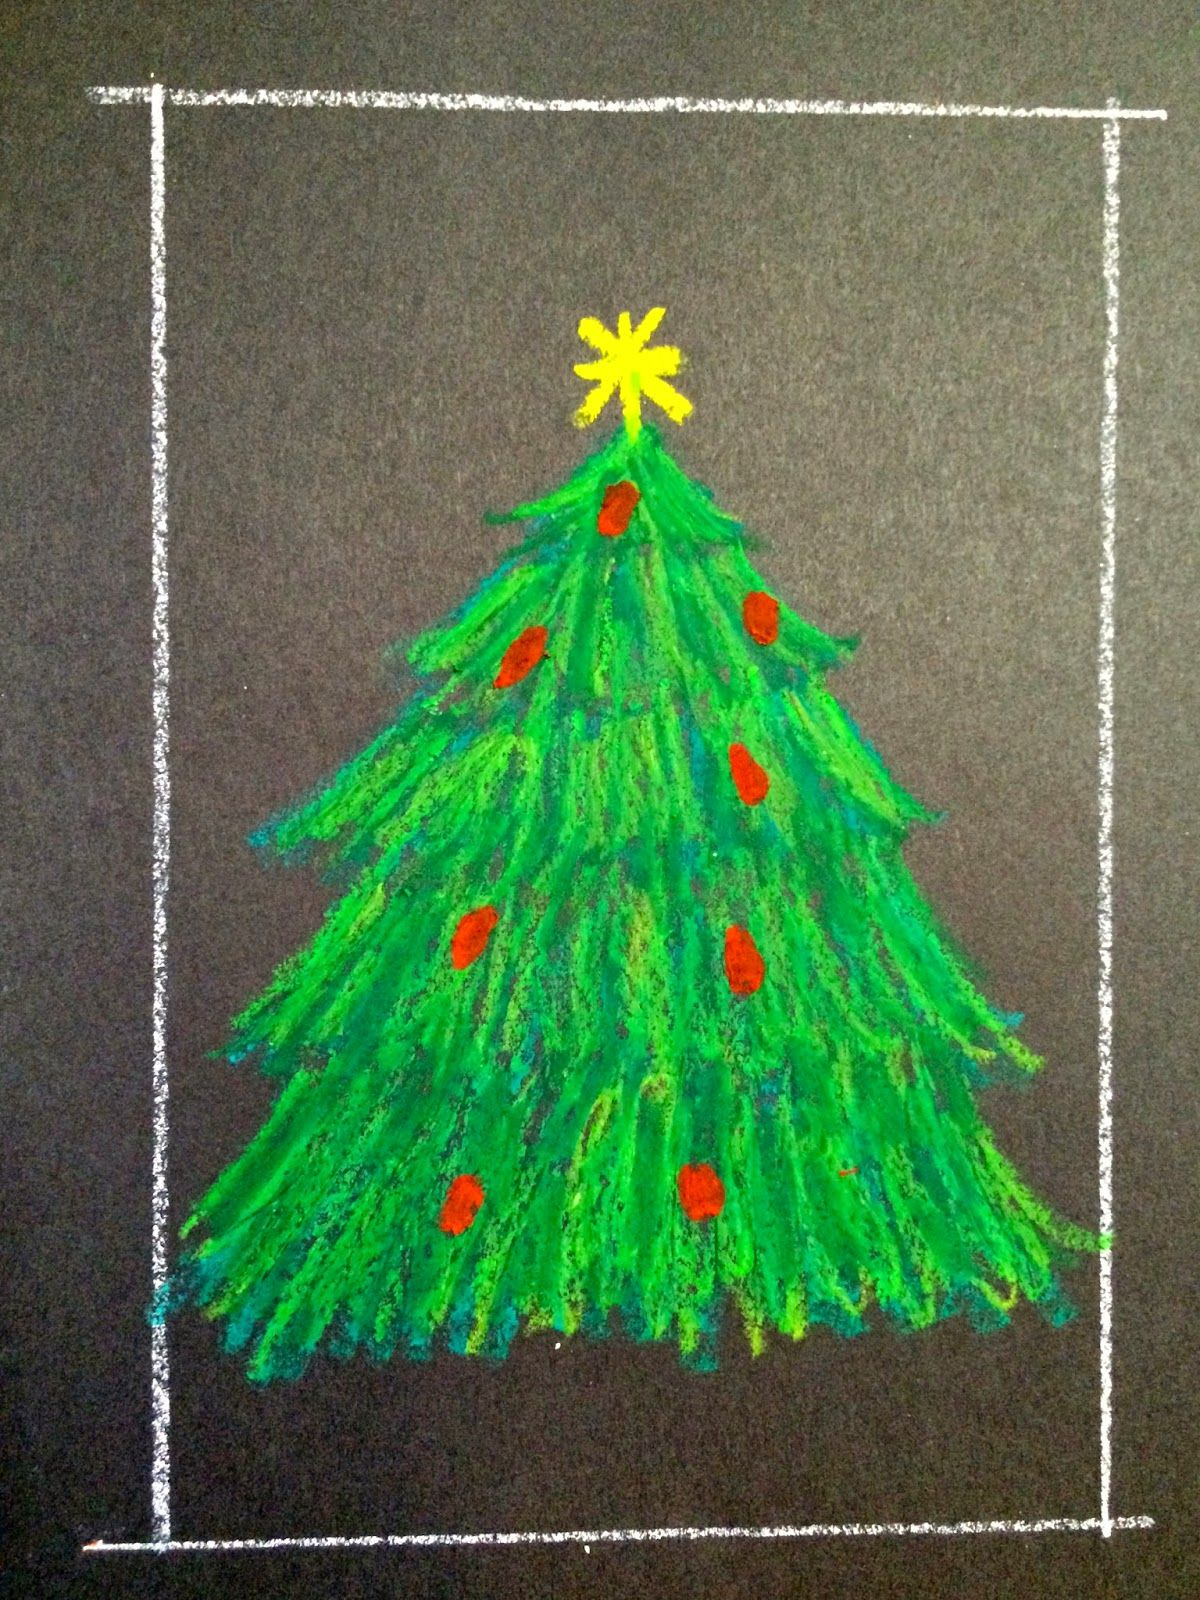 Kathy S Angelnik Designs Art Project Ideas Oil Pastel Christmas Tree In A Snowstorm Christmas Tree Drawing Christmas Art Christmas Art Projects